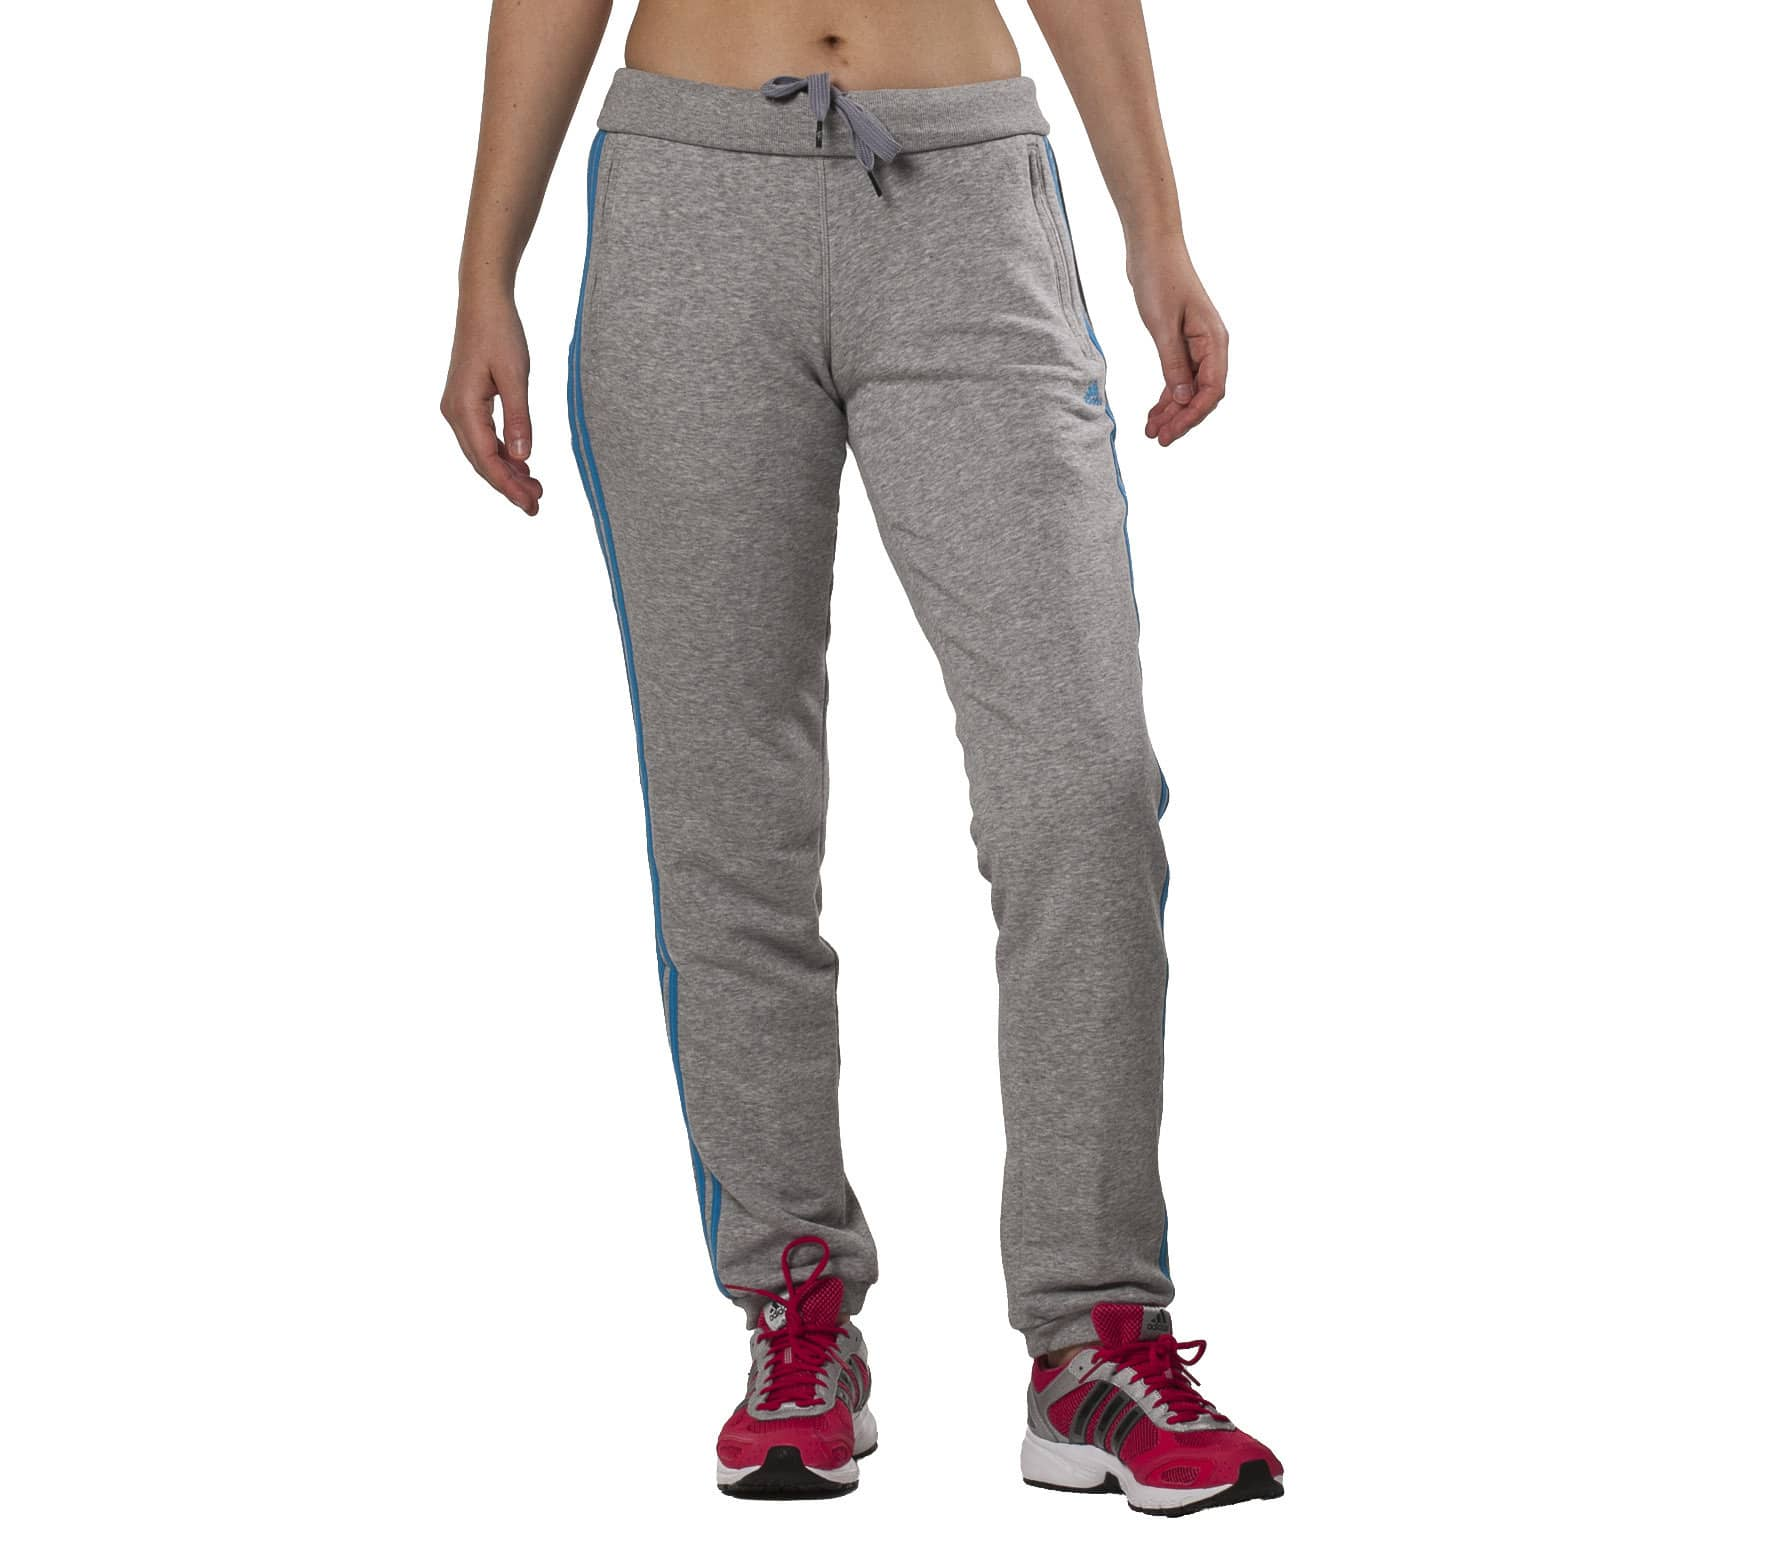 Adidas - Essentials 3 Stripes Seasonal Pant Femmes (gris bleu ... cf832ddab75